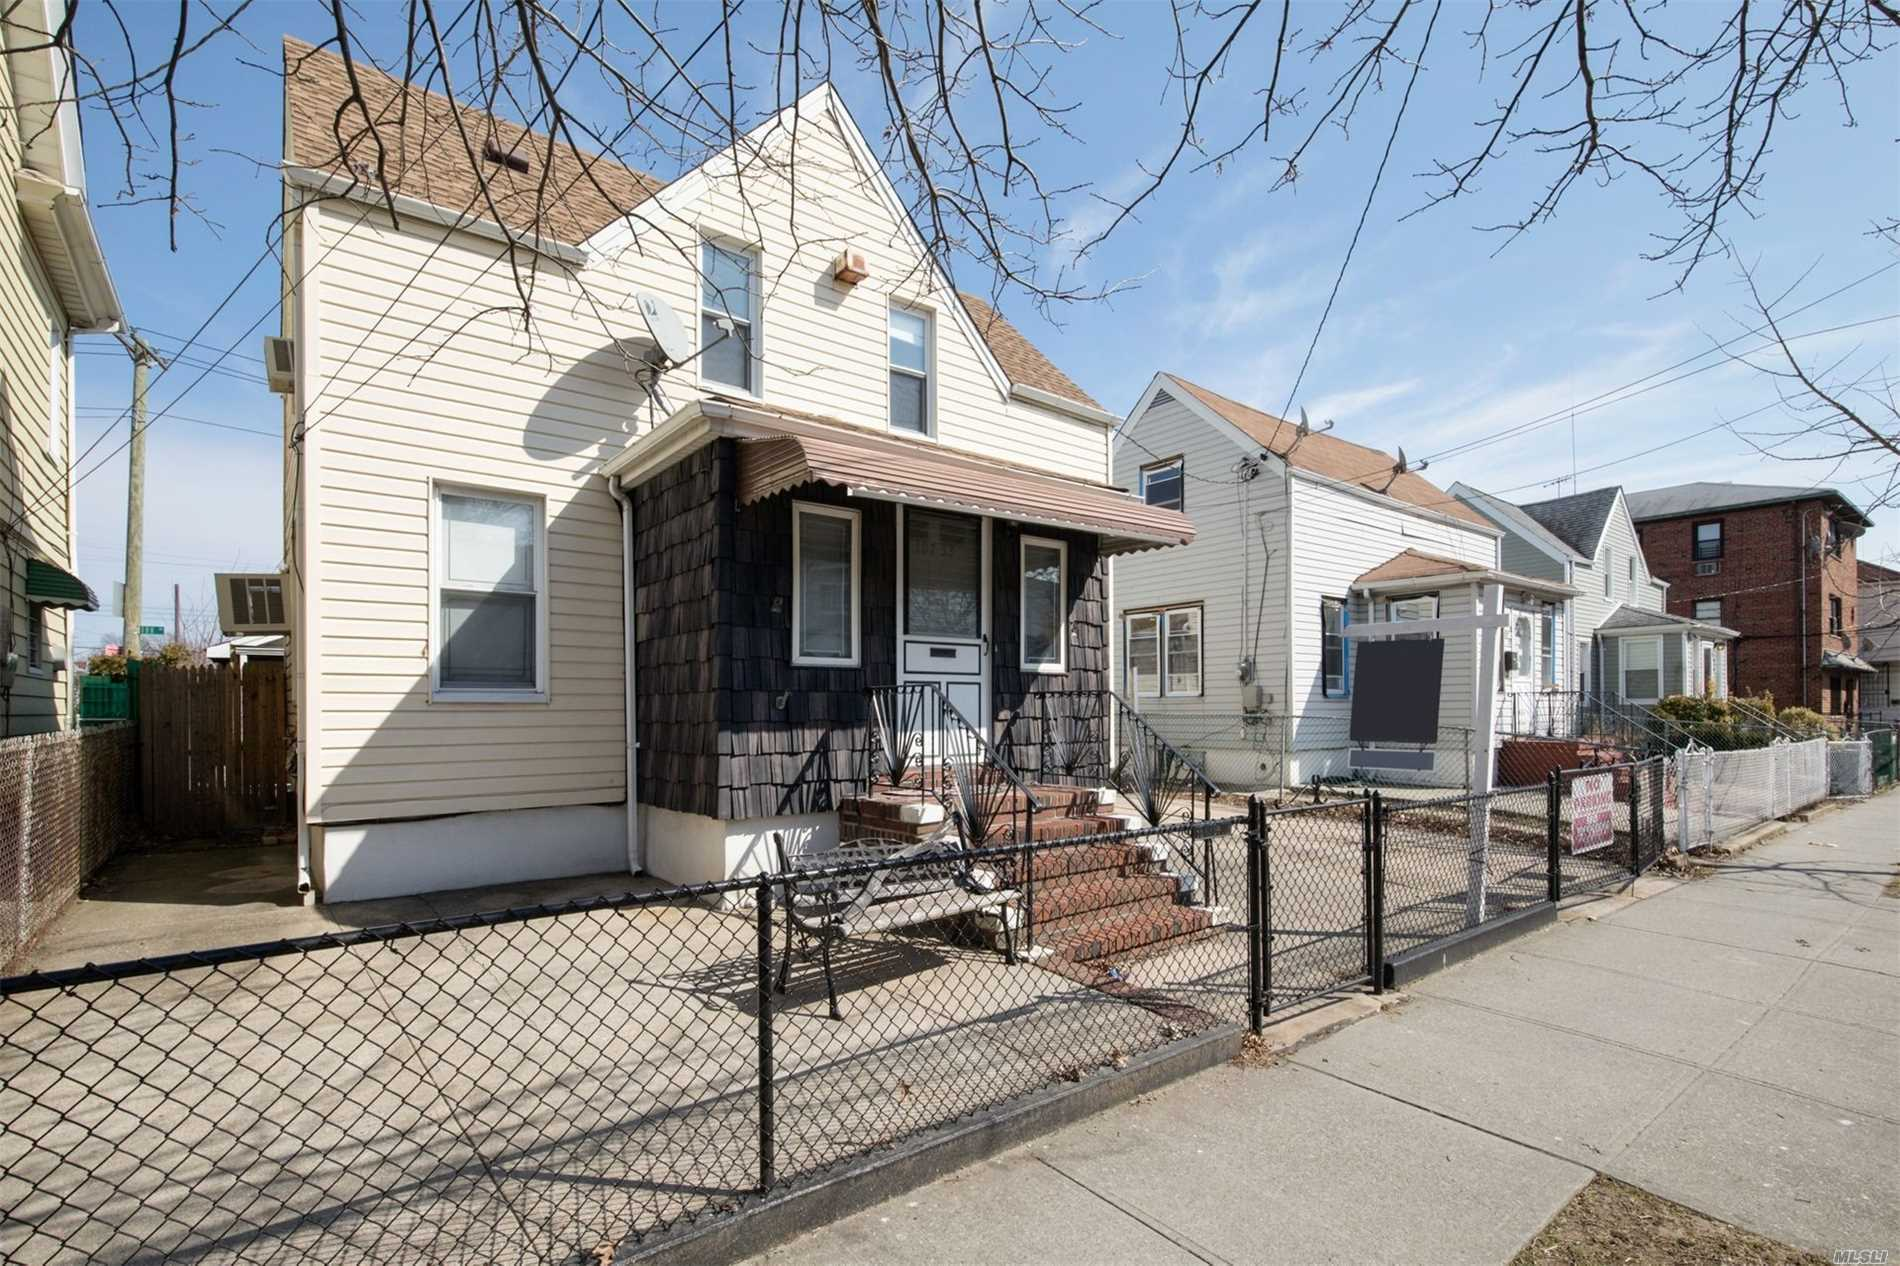 1 Family 2 Bedroom, 1.4 Car Garage, With Rear 2nd Entry To Garage, Pvt Driveway, 2 Blocks From A Train And Express Bus. Duckless A/C, Alarmed...All Information Deemed Reliable And Should Will Be Verified...